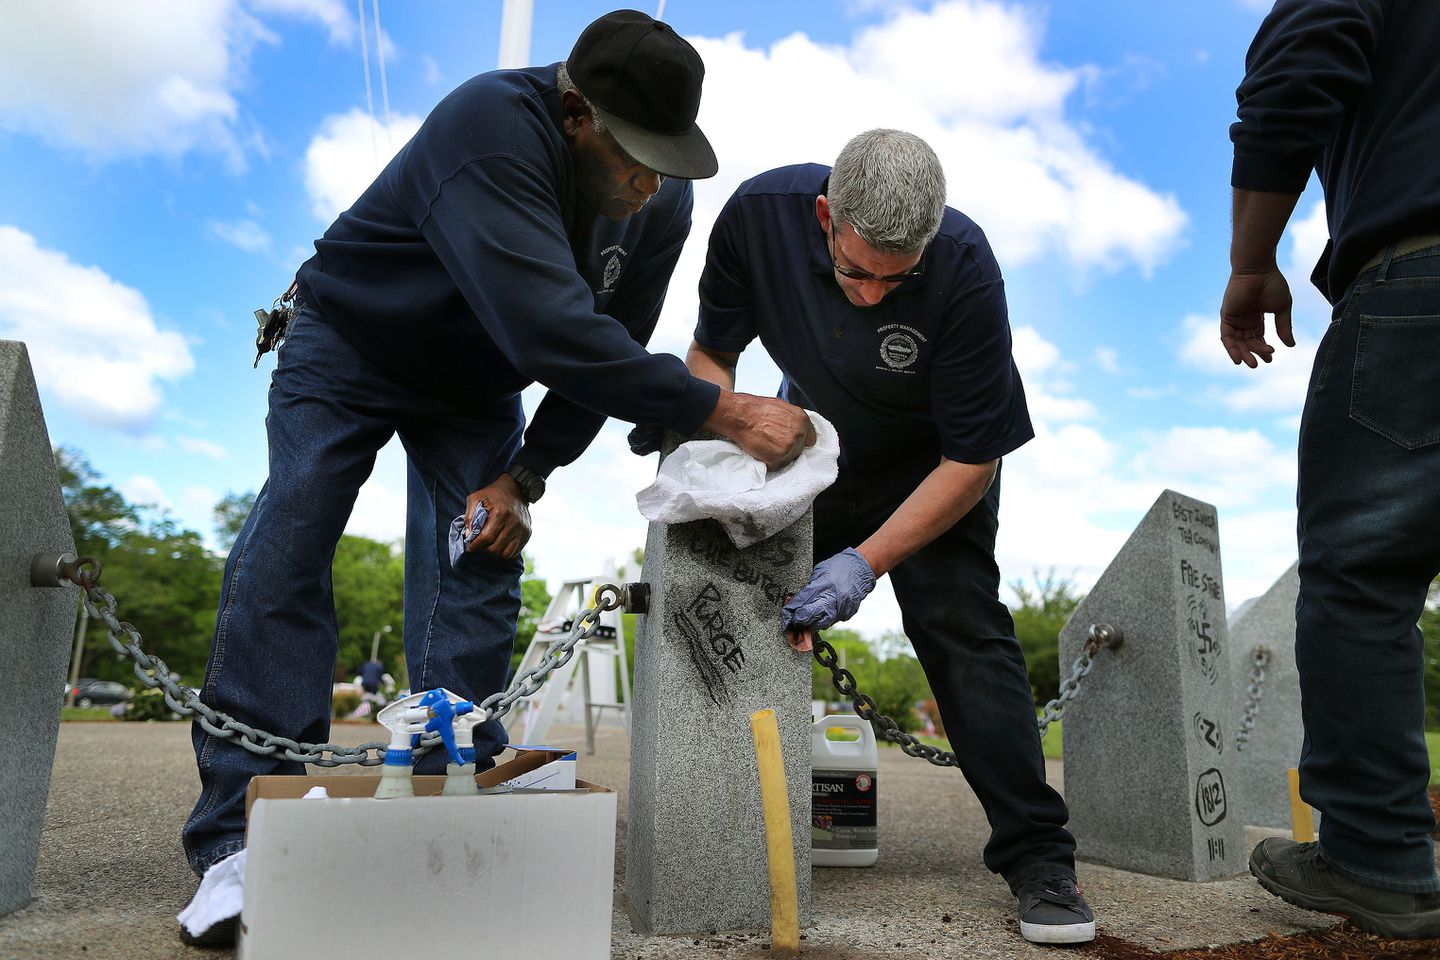 Veterans Official On Suspect Identified In Memorial Vandalism Pray For The Guy The Boston Globe